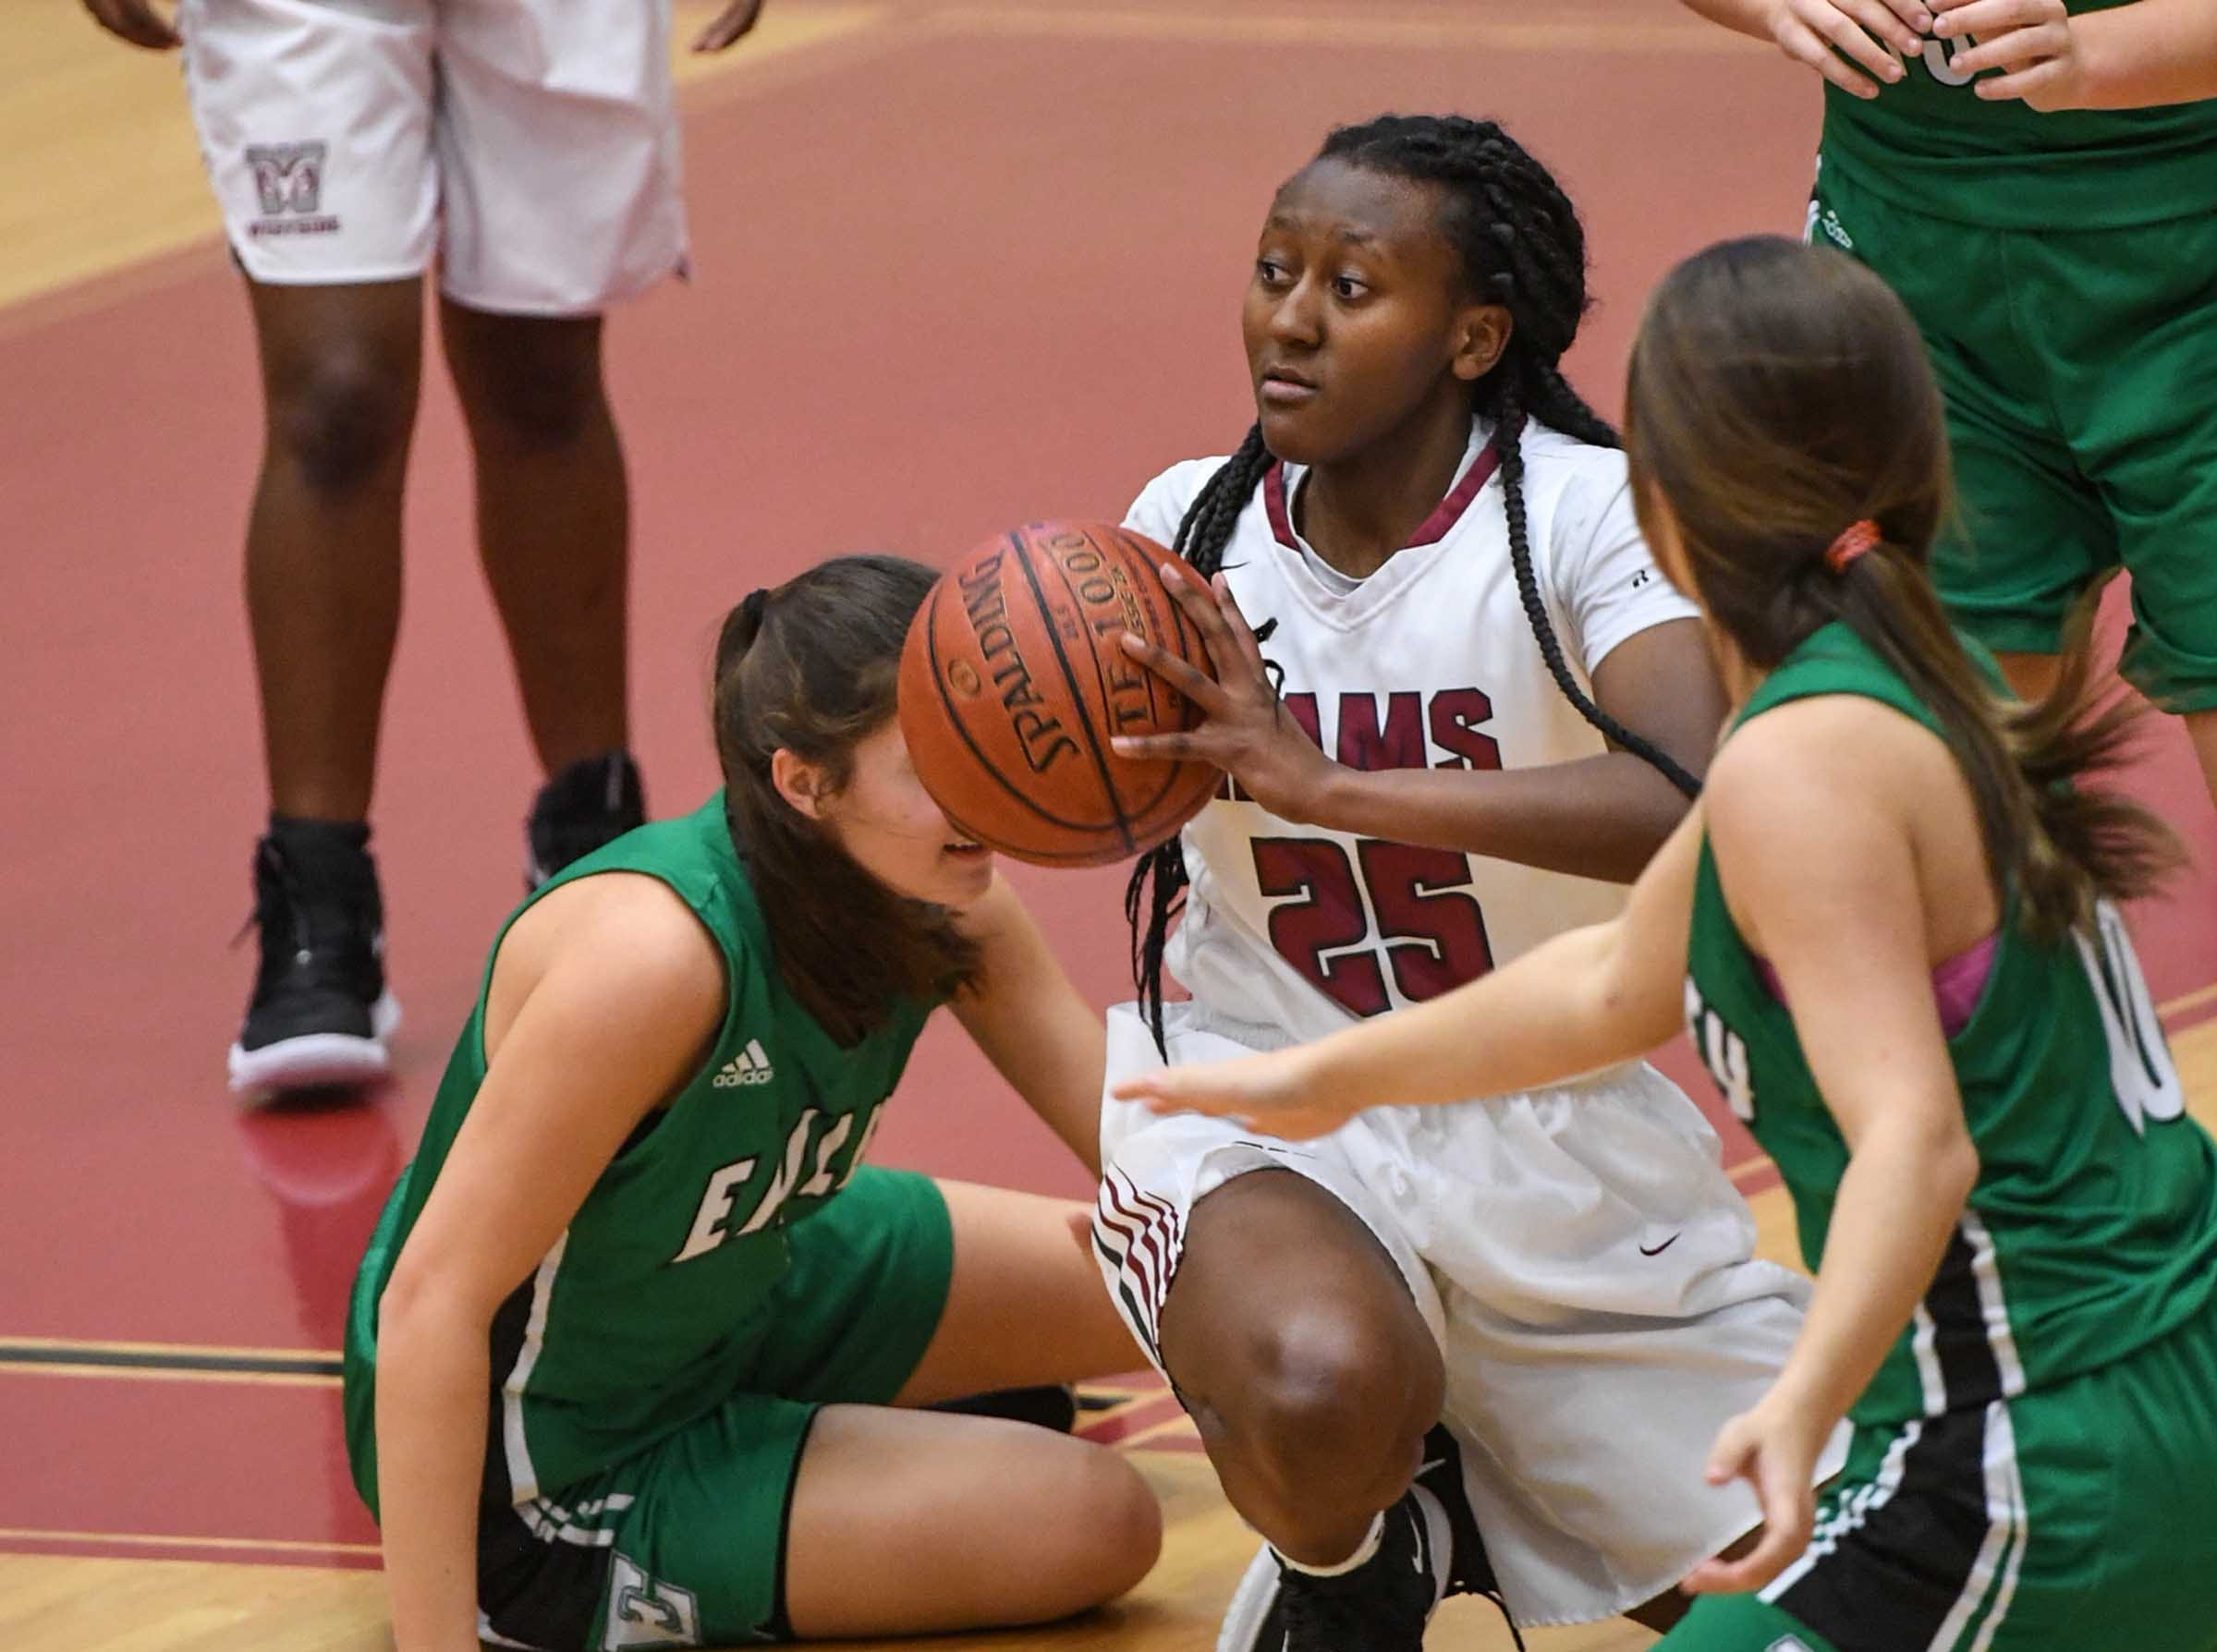 Westside junior Keyshuna Fair(25) passes the ball during the third quarter at Westside High School in Anderson on Friday.